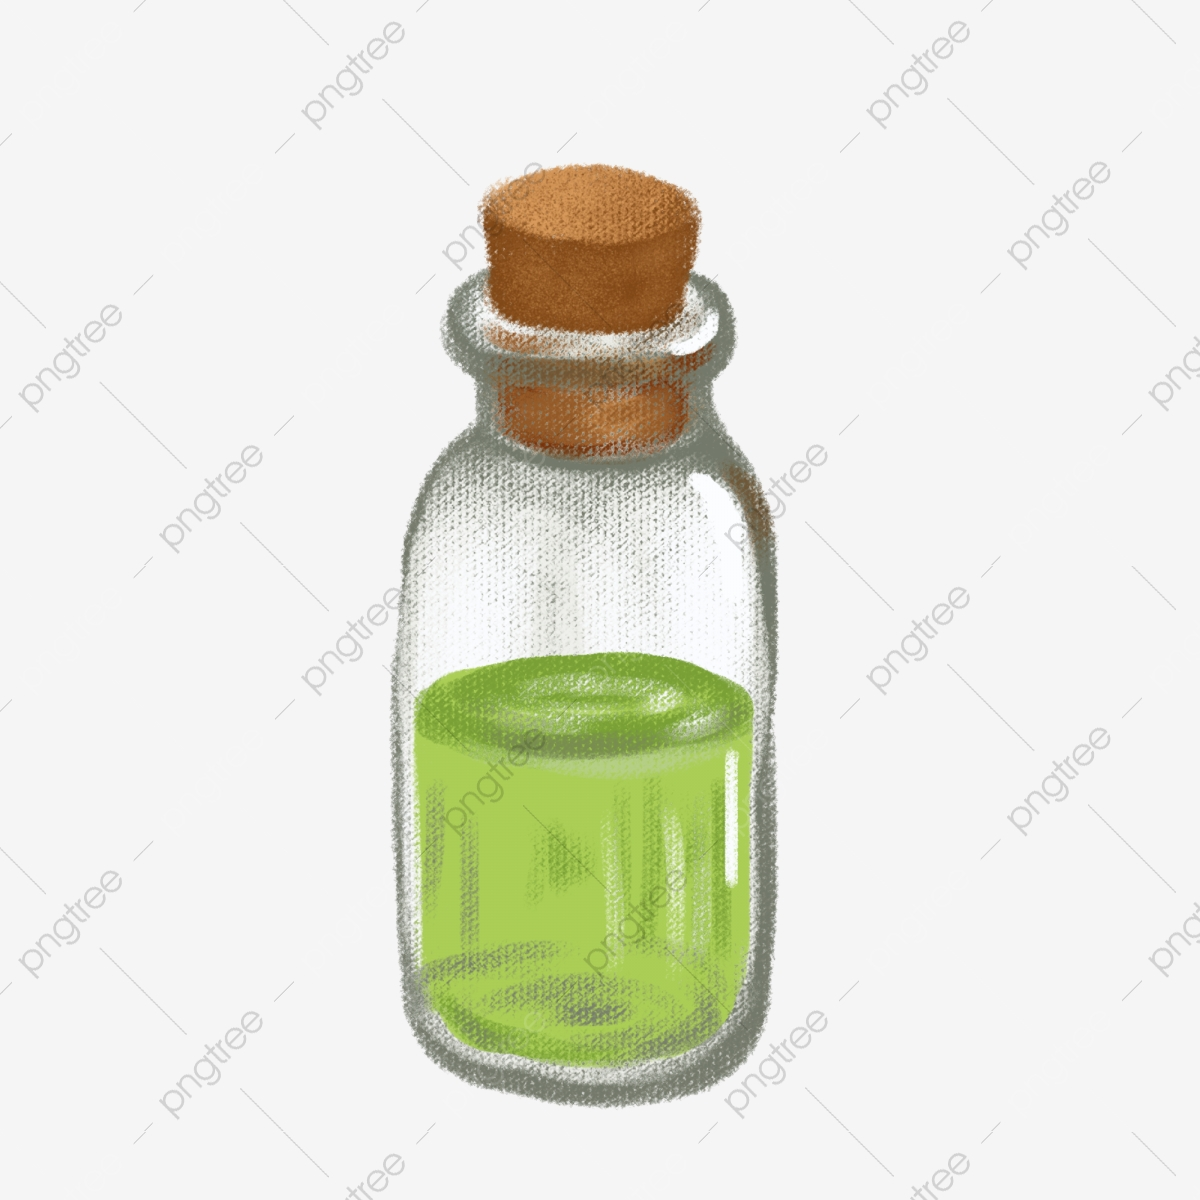 Ms Skin Care Products Essential Oil Illustration, Aromatherapy Oil.